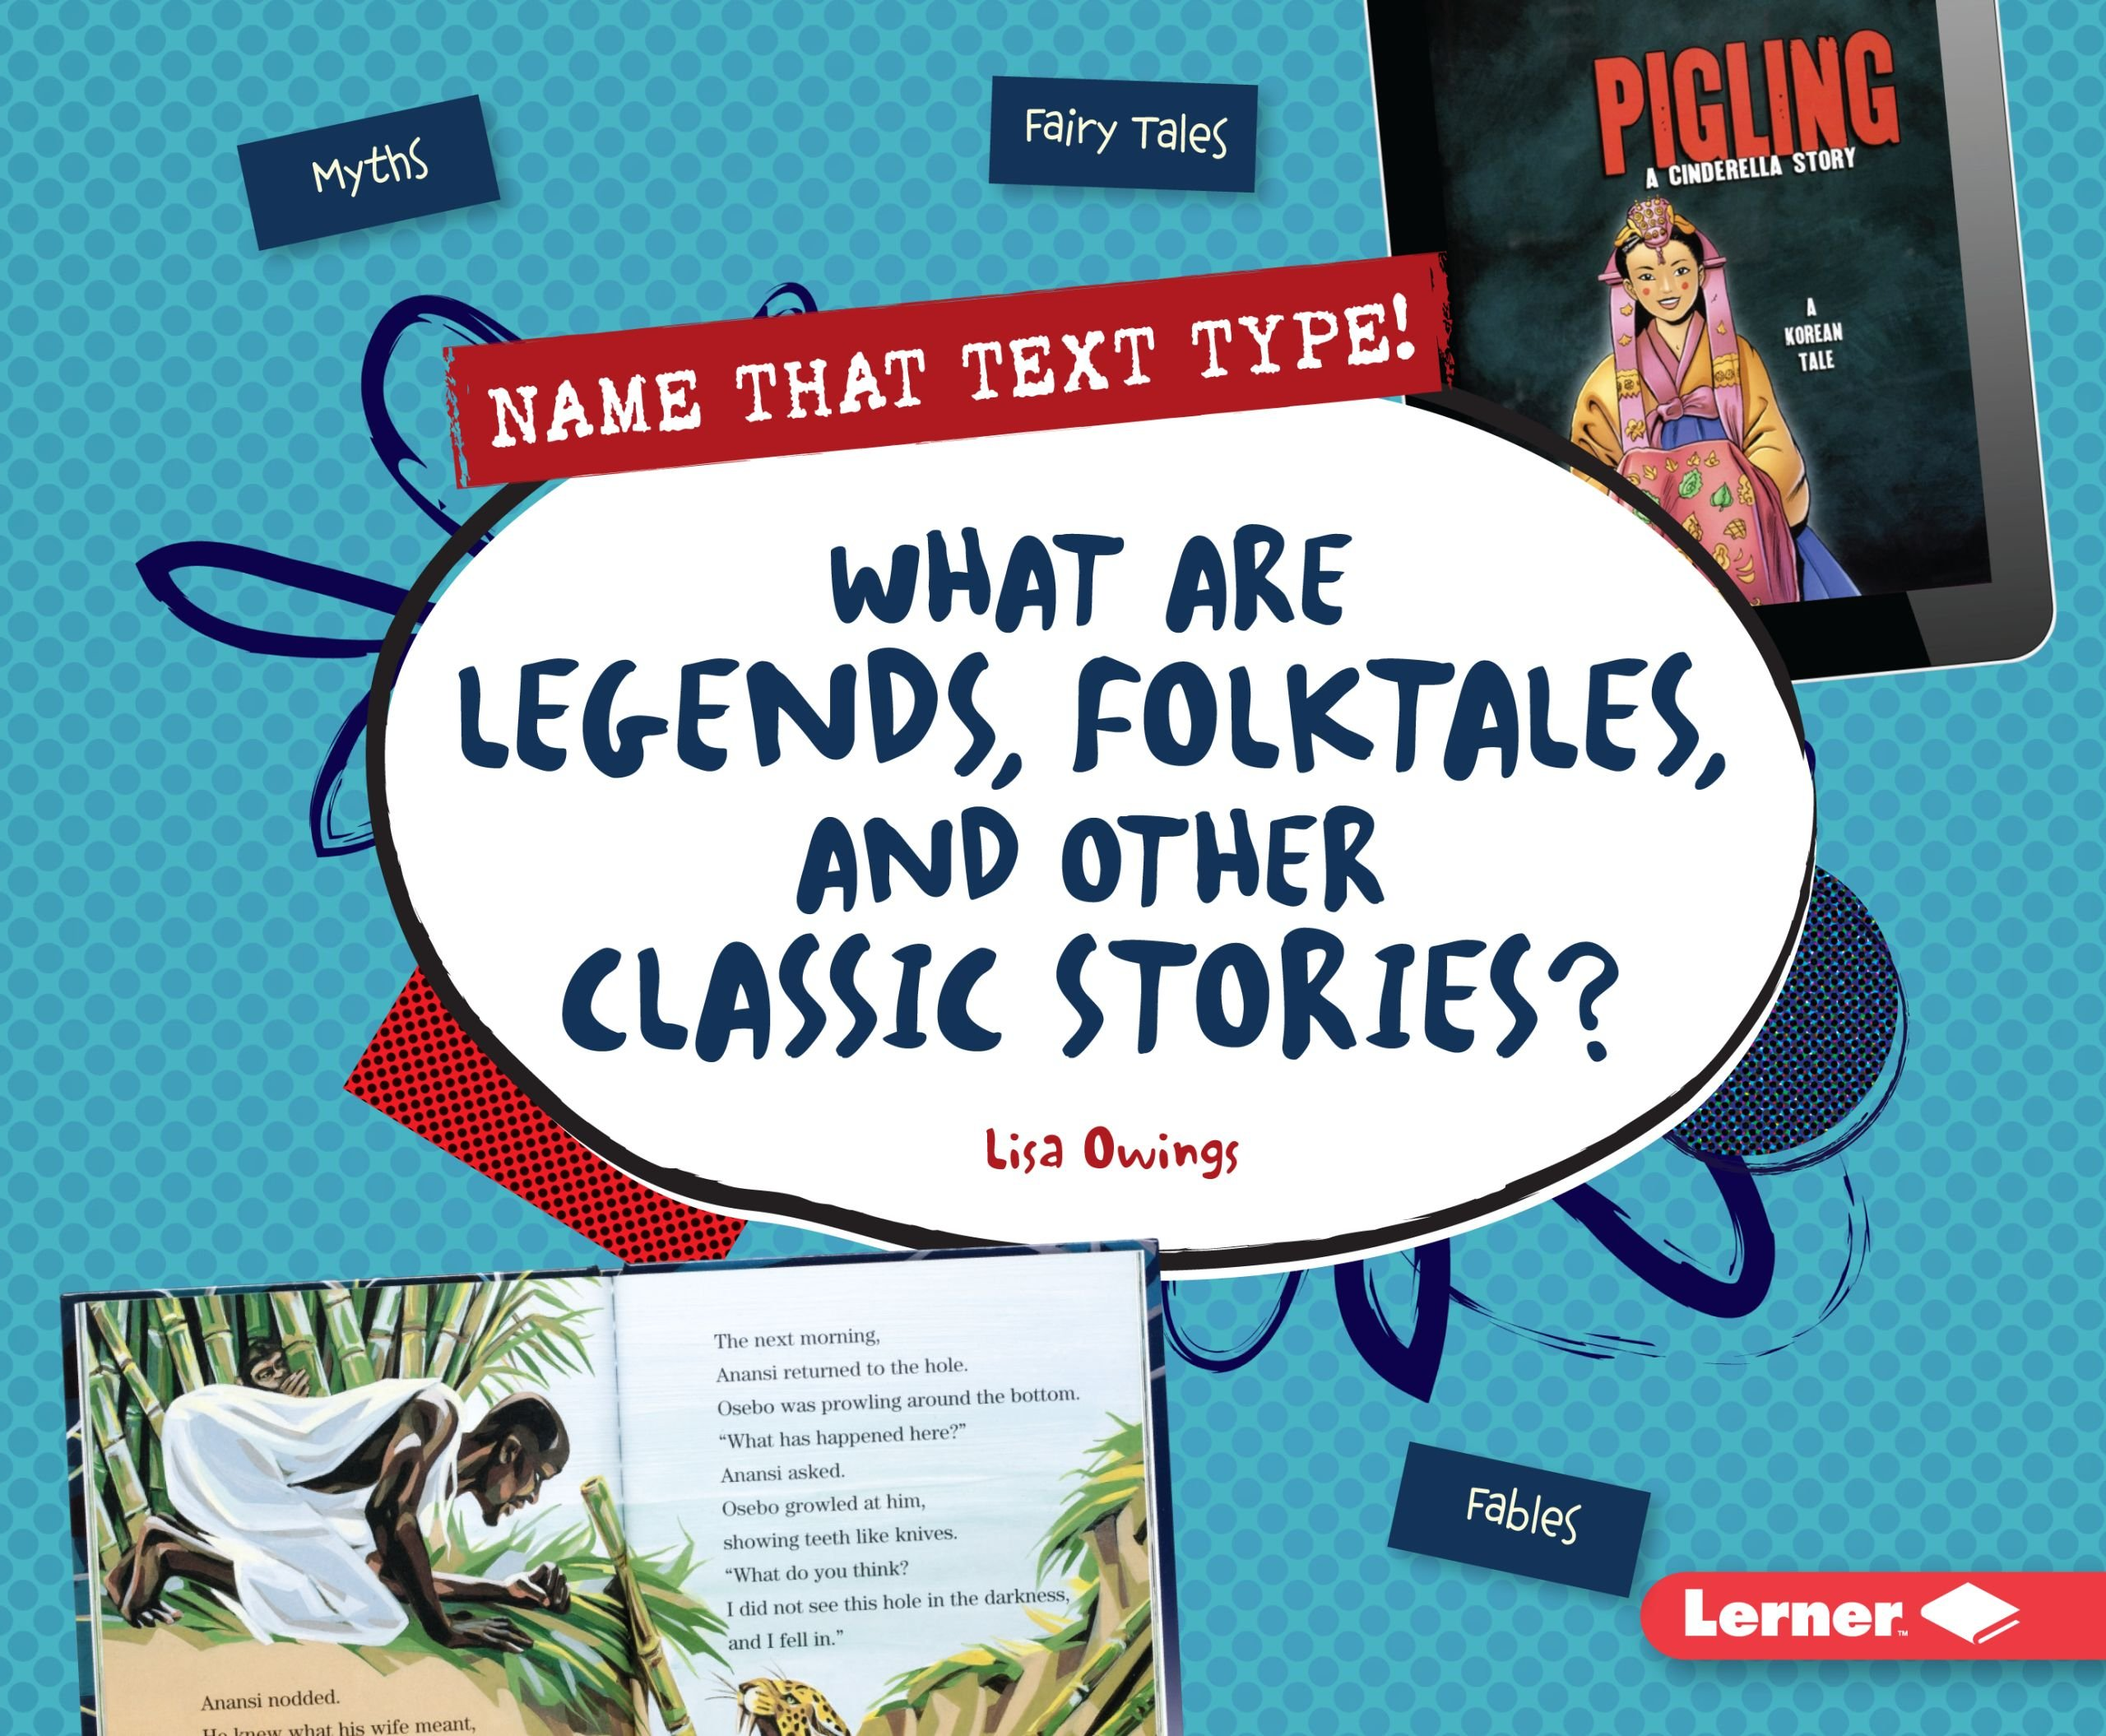 What Are Legends, Folktales, and Other Classic Stories? (Name That Text Type!) PDF